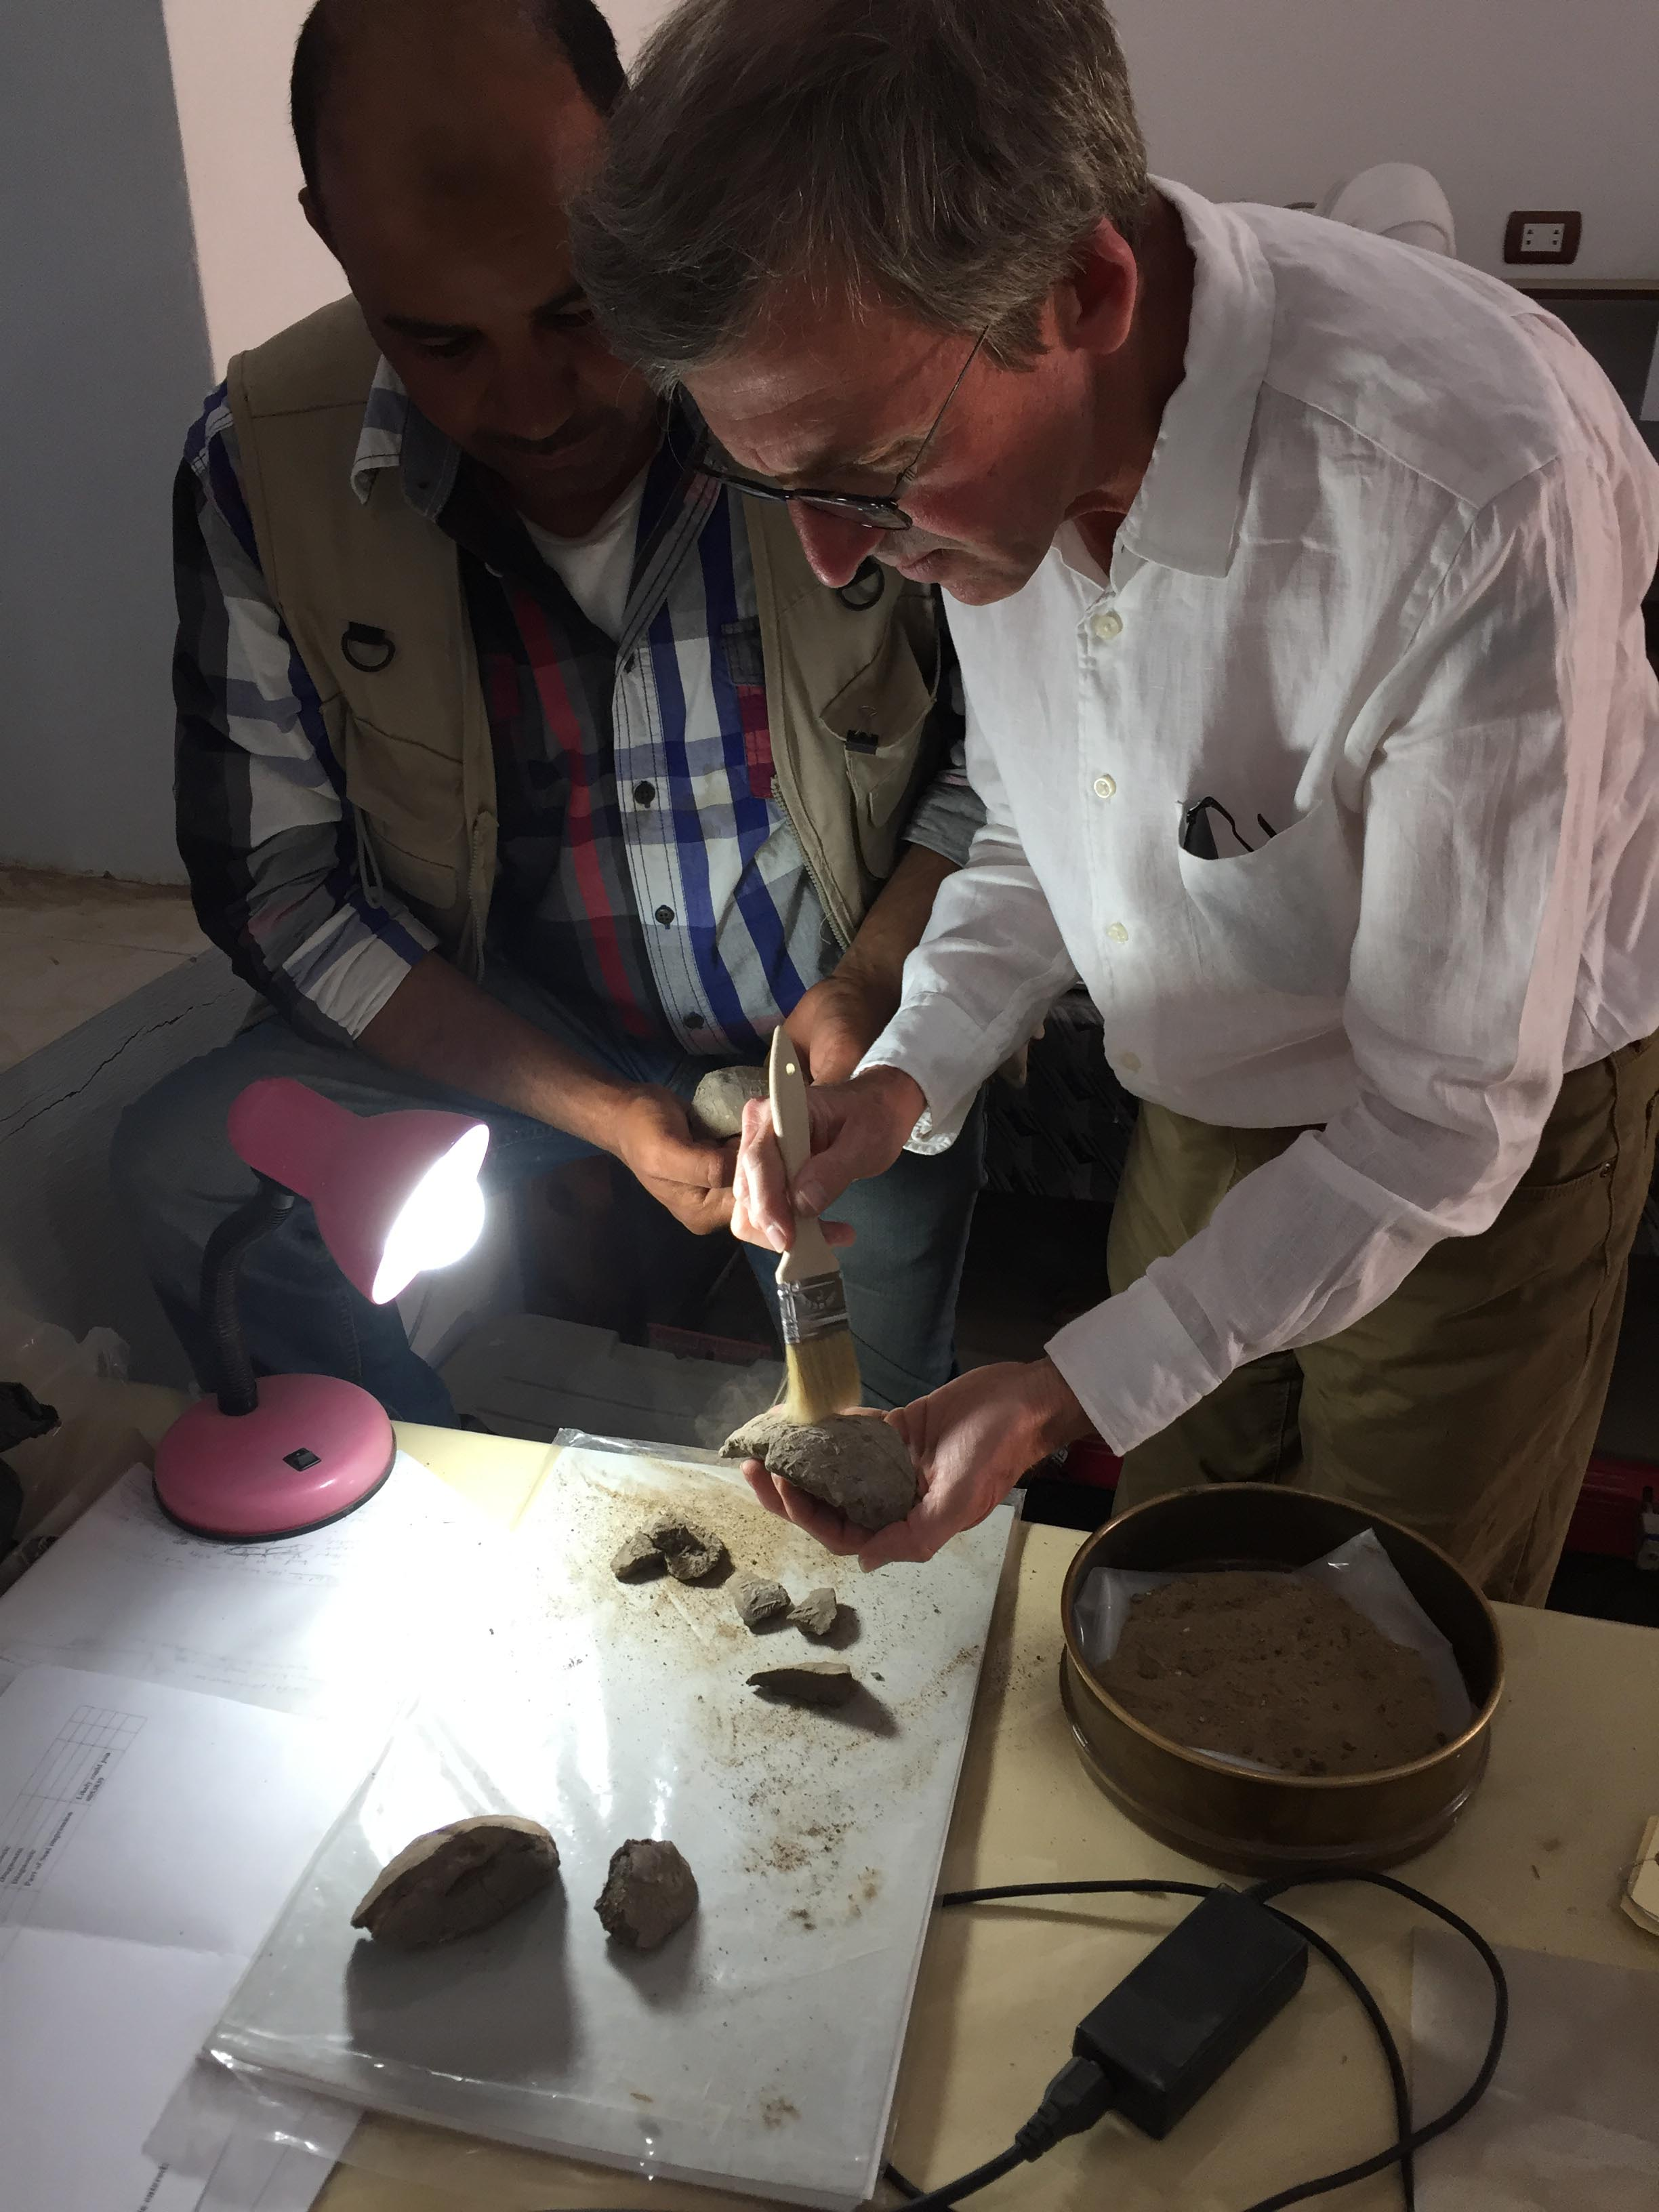 Fig. 11. Archaeologists Mohamed Abu el-Yazid and Matthew Adams examine seal impressions in the lab. Photo: Wendy Doyon © North Abydos Expedition 2019